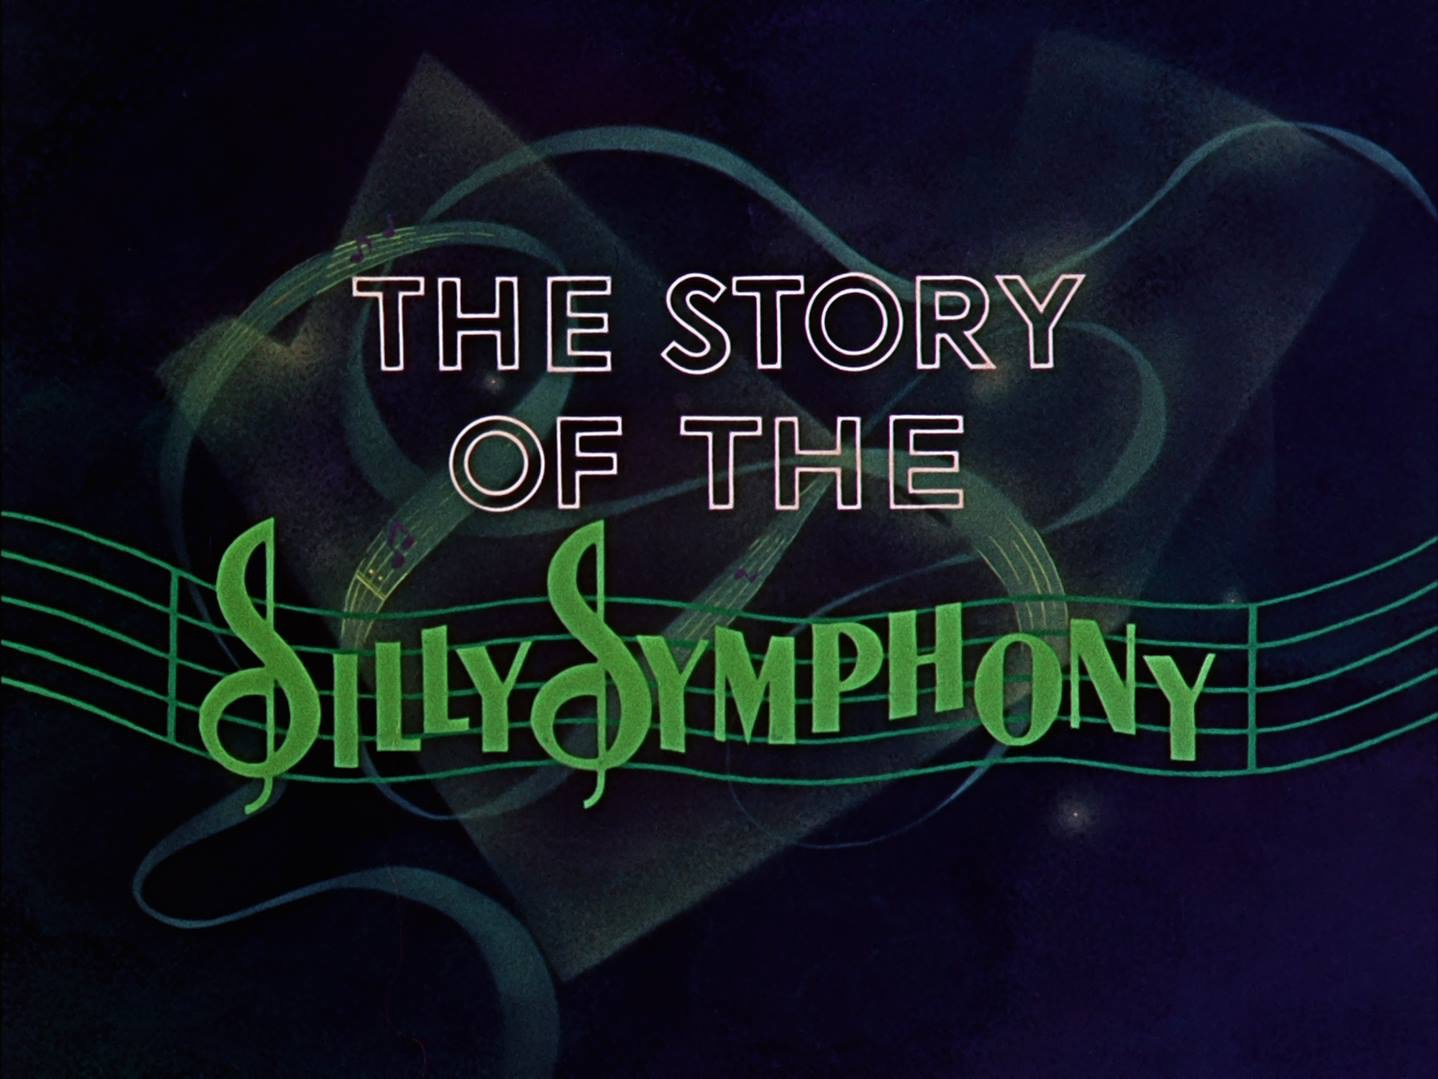 Wednesdays With Walt: The Story of the Silly Symphony